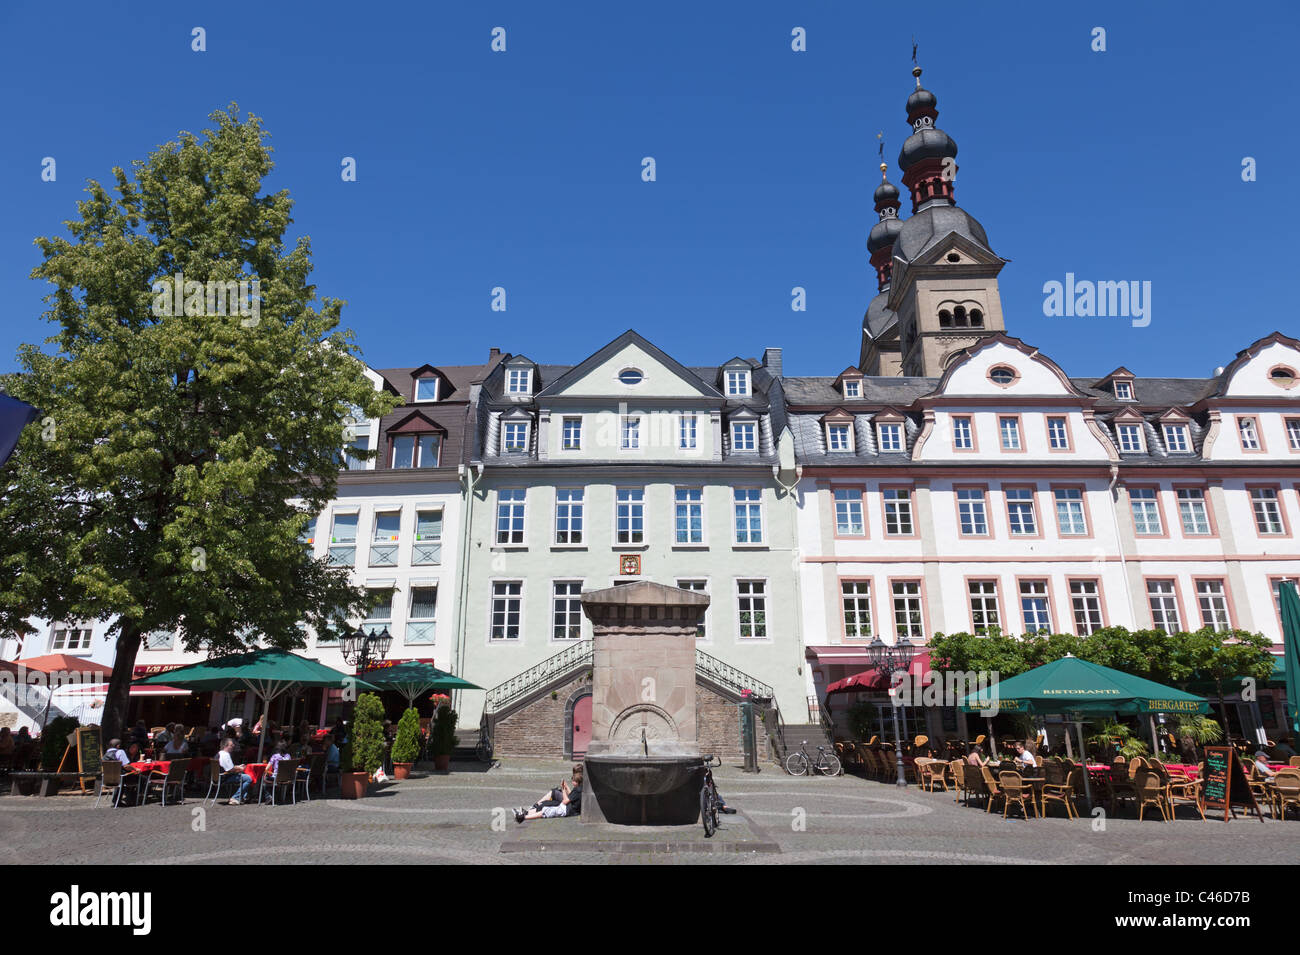 the platz am plan in koblenz with the old fire station in the stock photo royalty free image. Black Bedroom Furniture Sets. Home Design Ideas